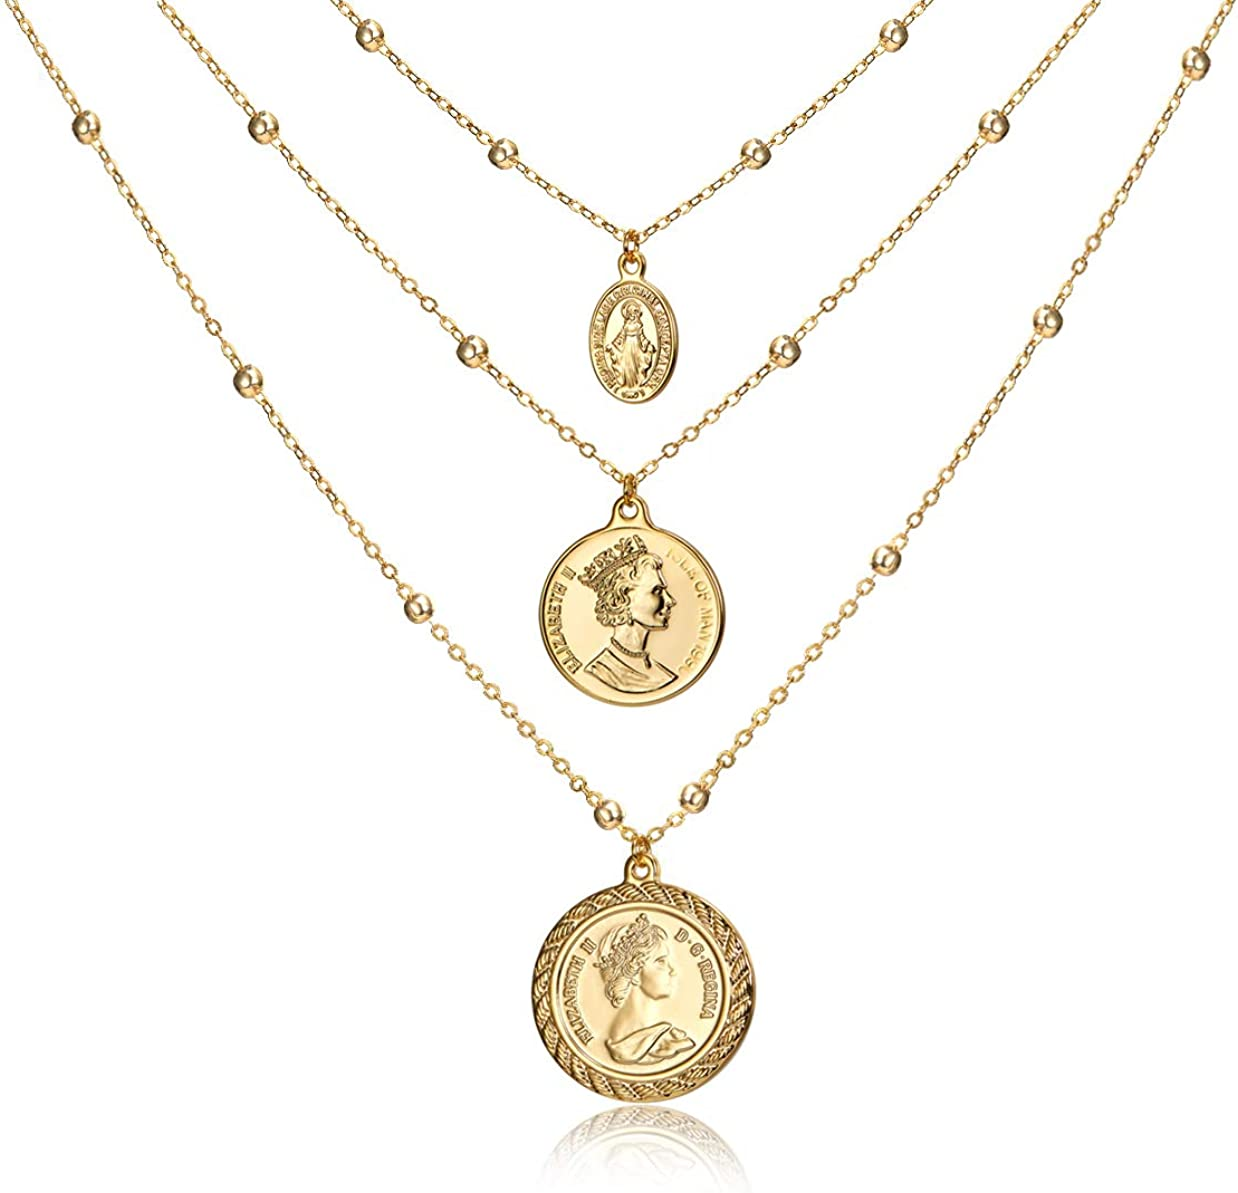 Coin Pendant Necklace 18K Gold Plated Queen Elizabeth (Both Sides Different Prints) Coin Station Chain Stylish Vintage Mother's Day Valentine's Day Couples Special Gifts Layered Necklace Jewelry for Women Her